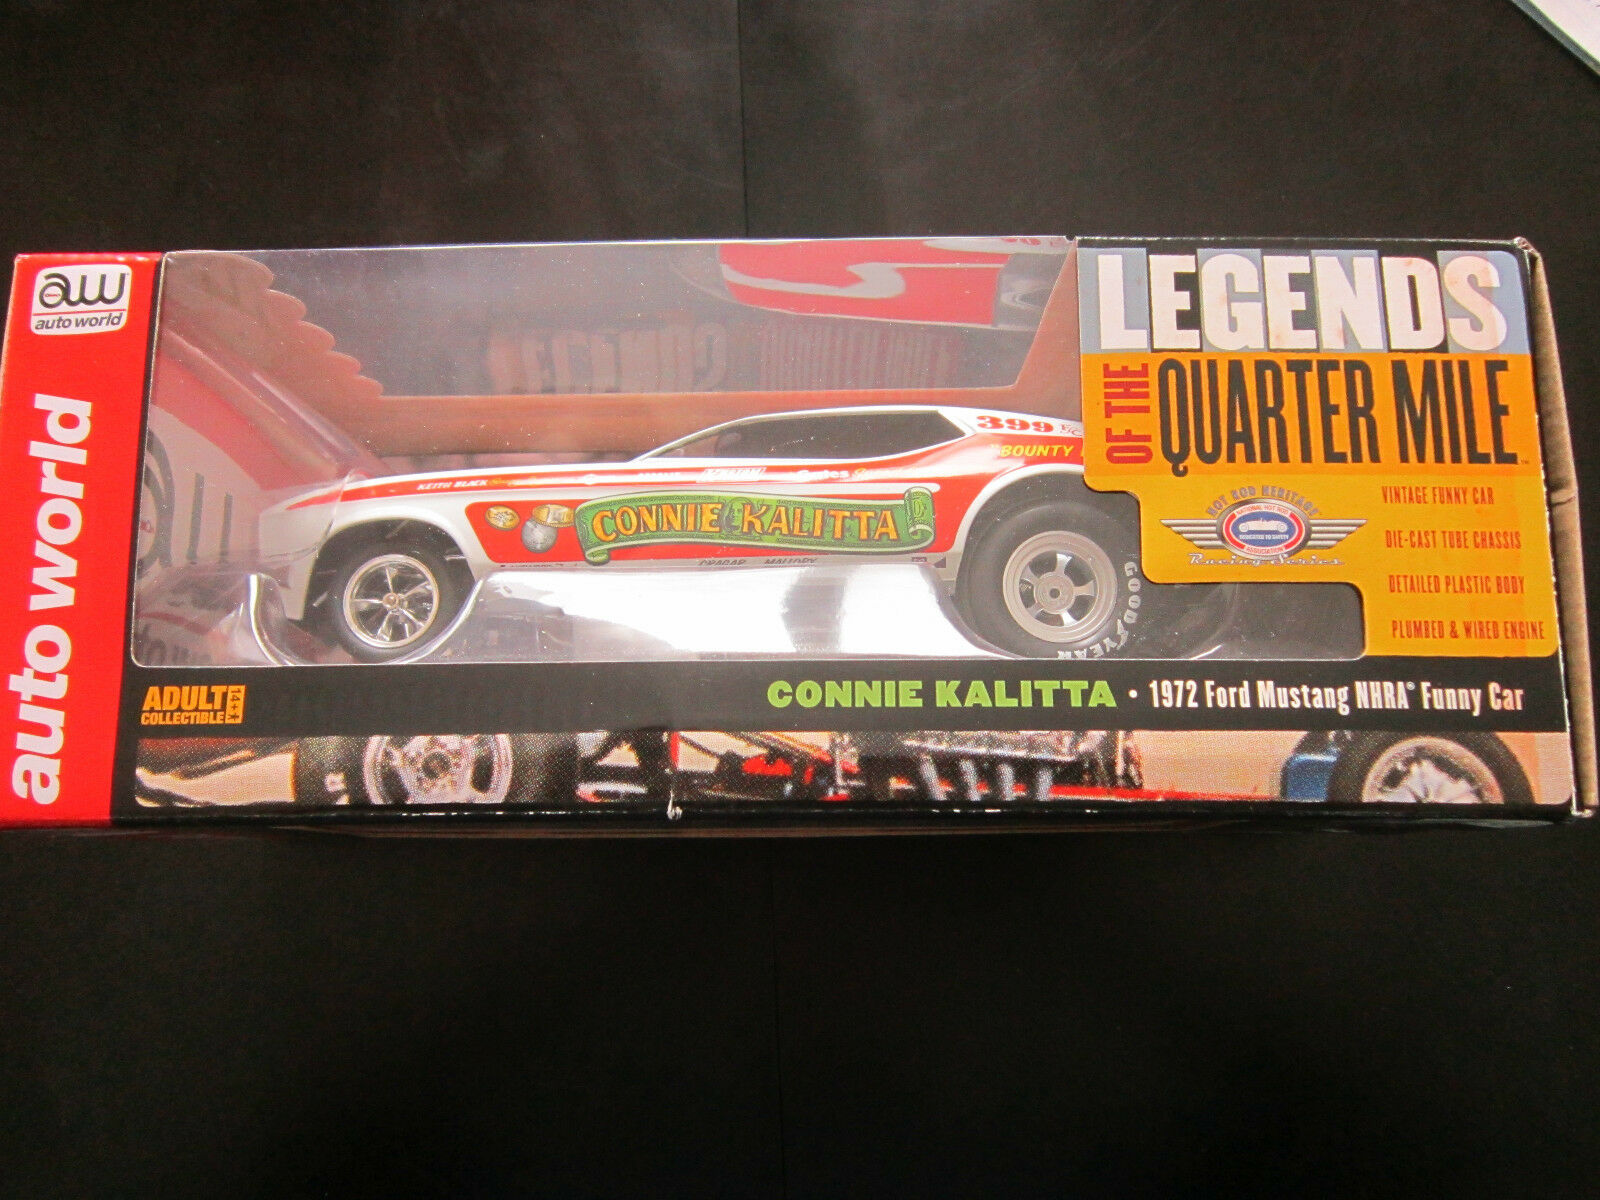 AUTO WORLD LEGENDS OF THE QUARTER MILE CONNIE KALITTA1972 FORD MUSTANG FUNNY CAR